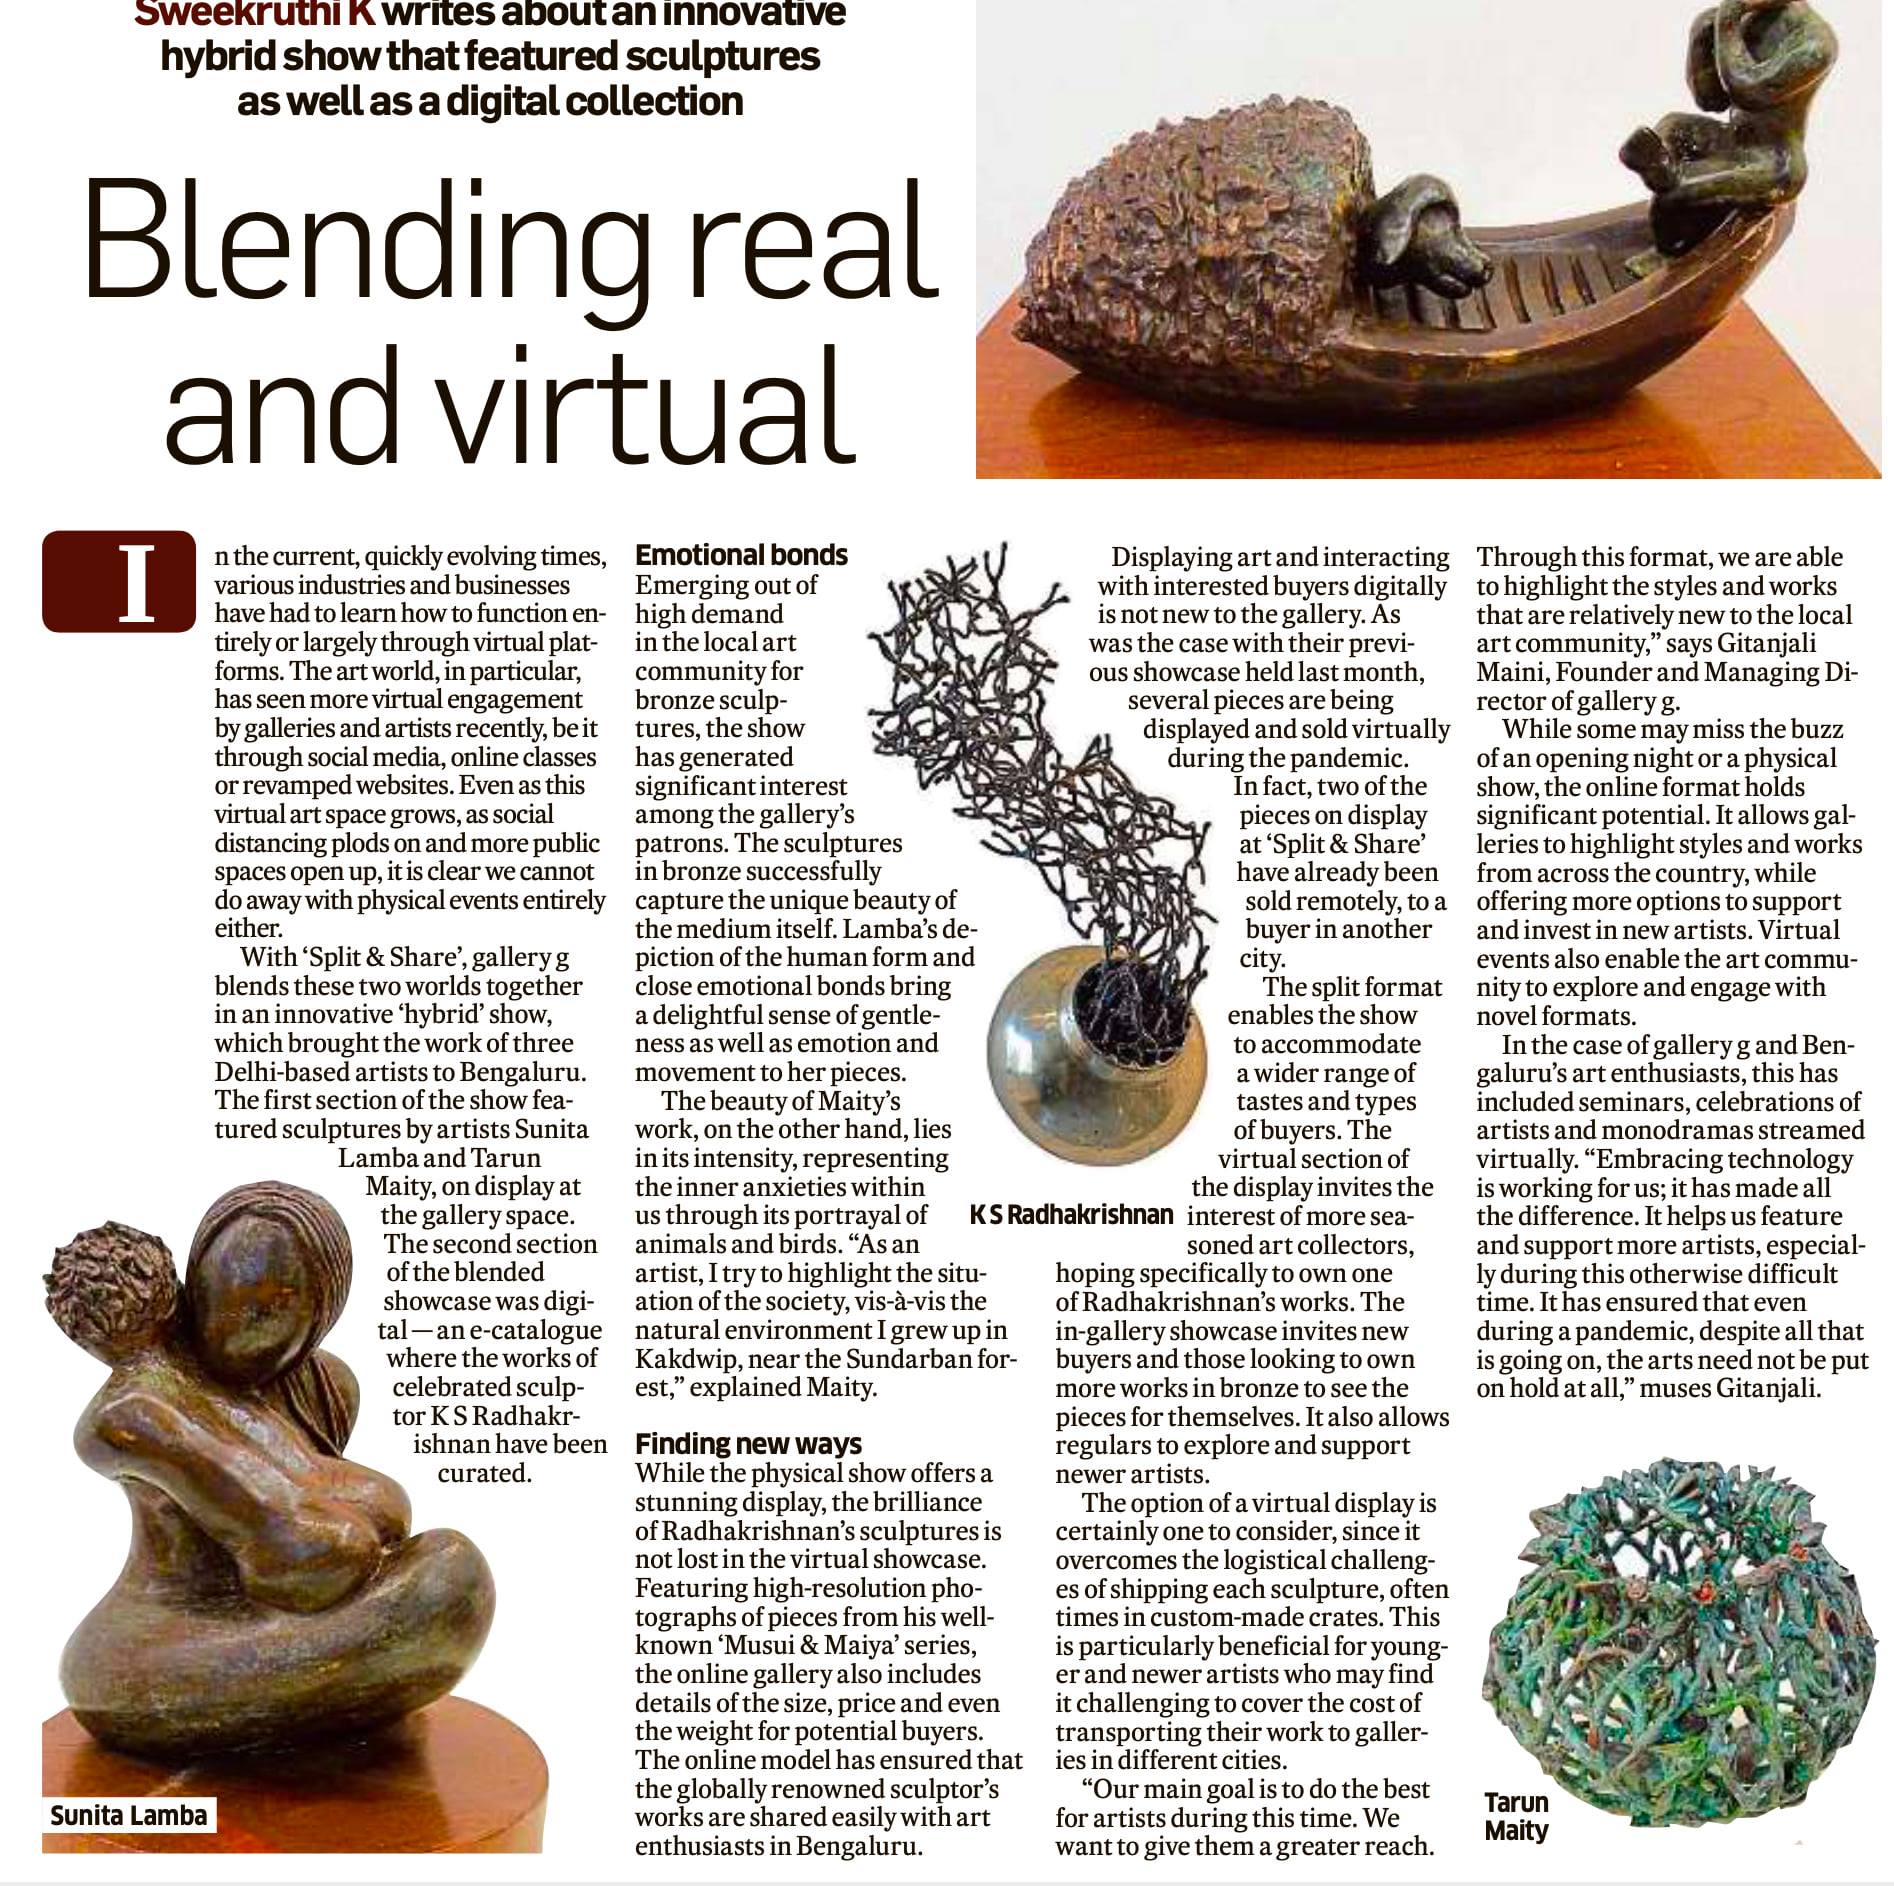 Blending real and virtual